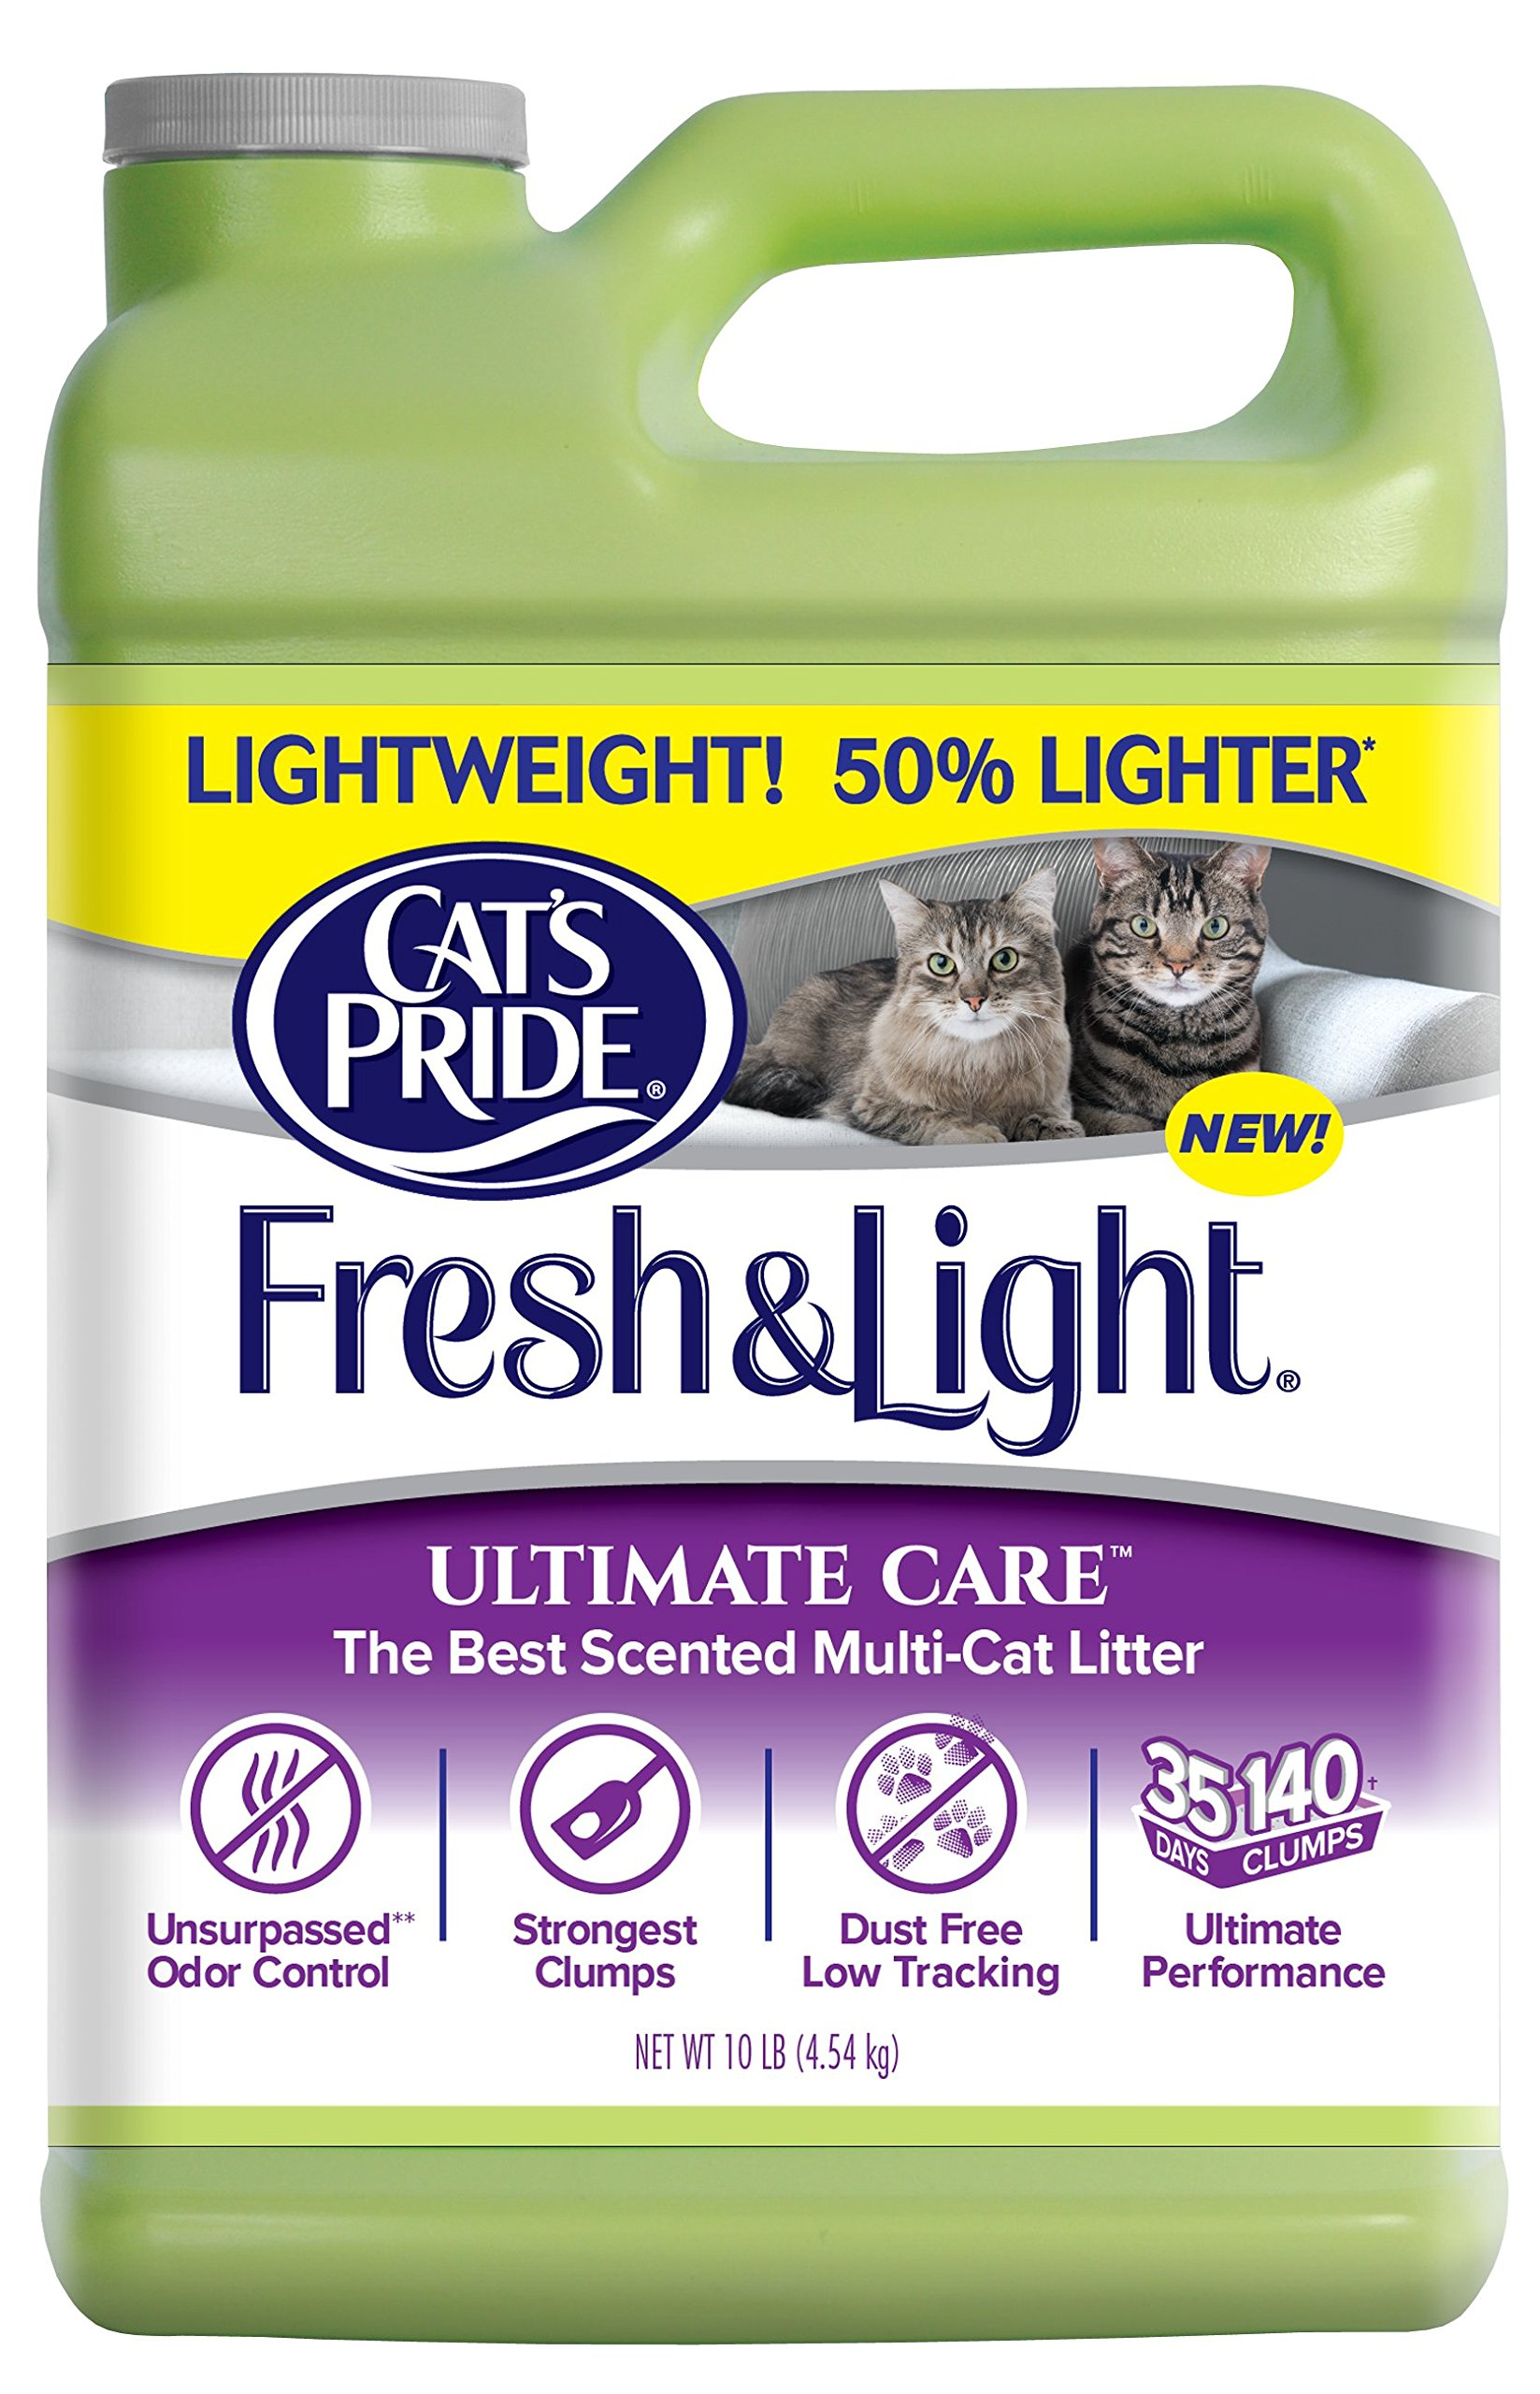 Cat's Pride Cat's Pride Fresh and Light Ultimate Care Lightweight Scented Mul...